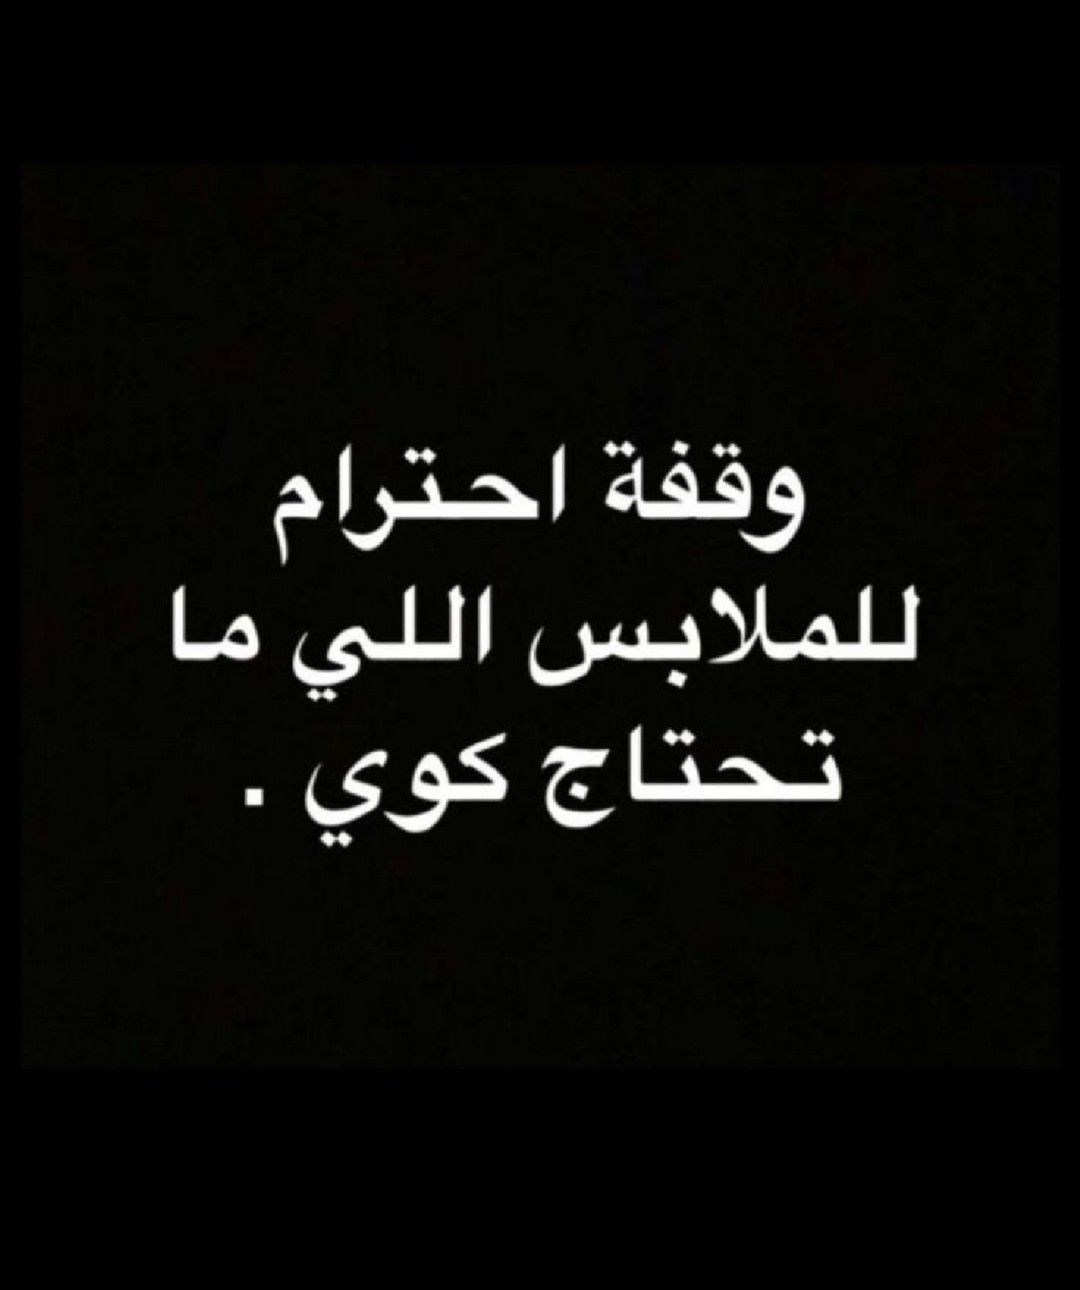 Pin By هيفاء On Middle Eastern Salads In 2021 One Word Quotes Funny Arabic Quotes Words Quotes